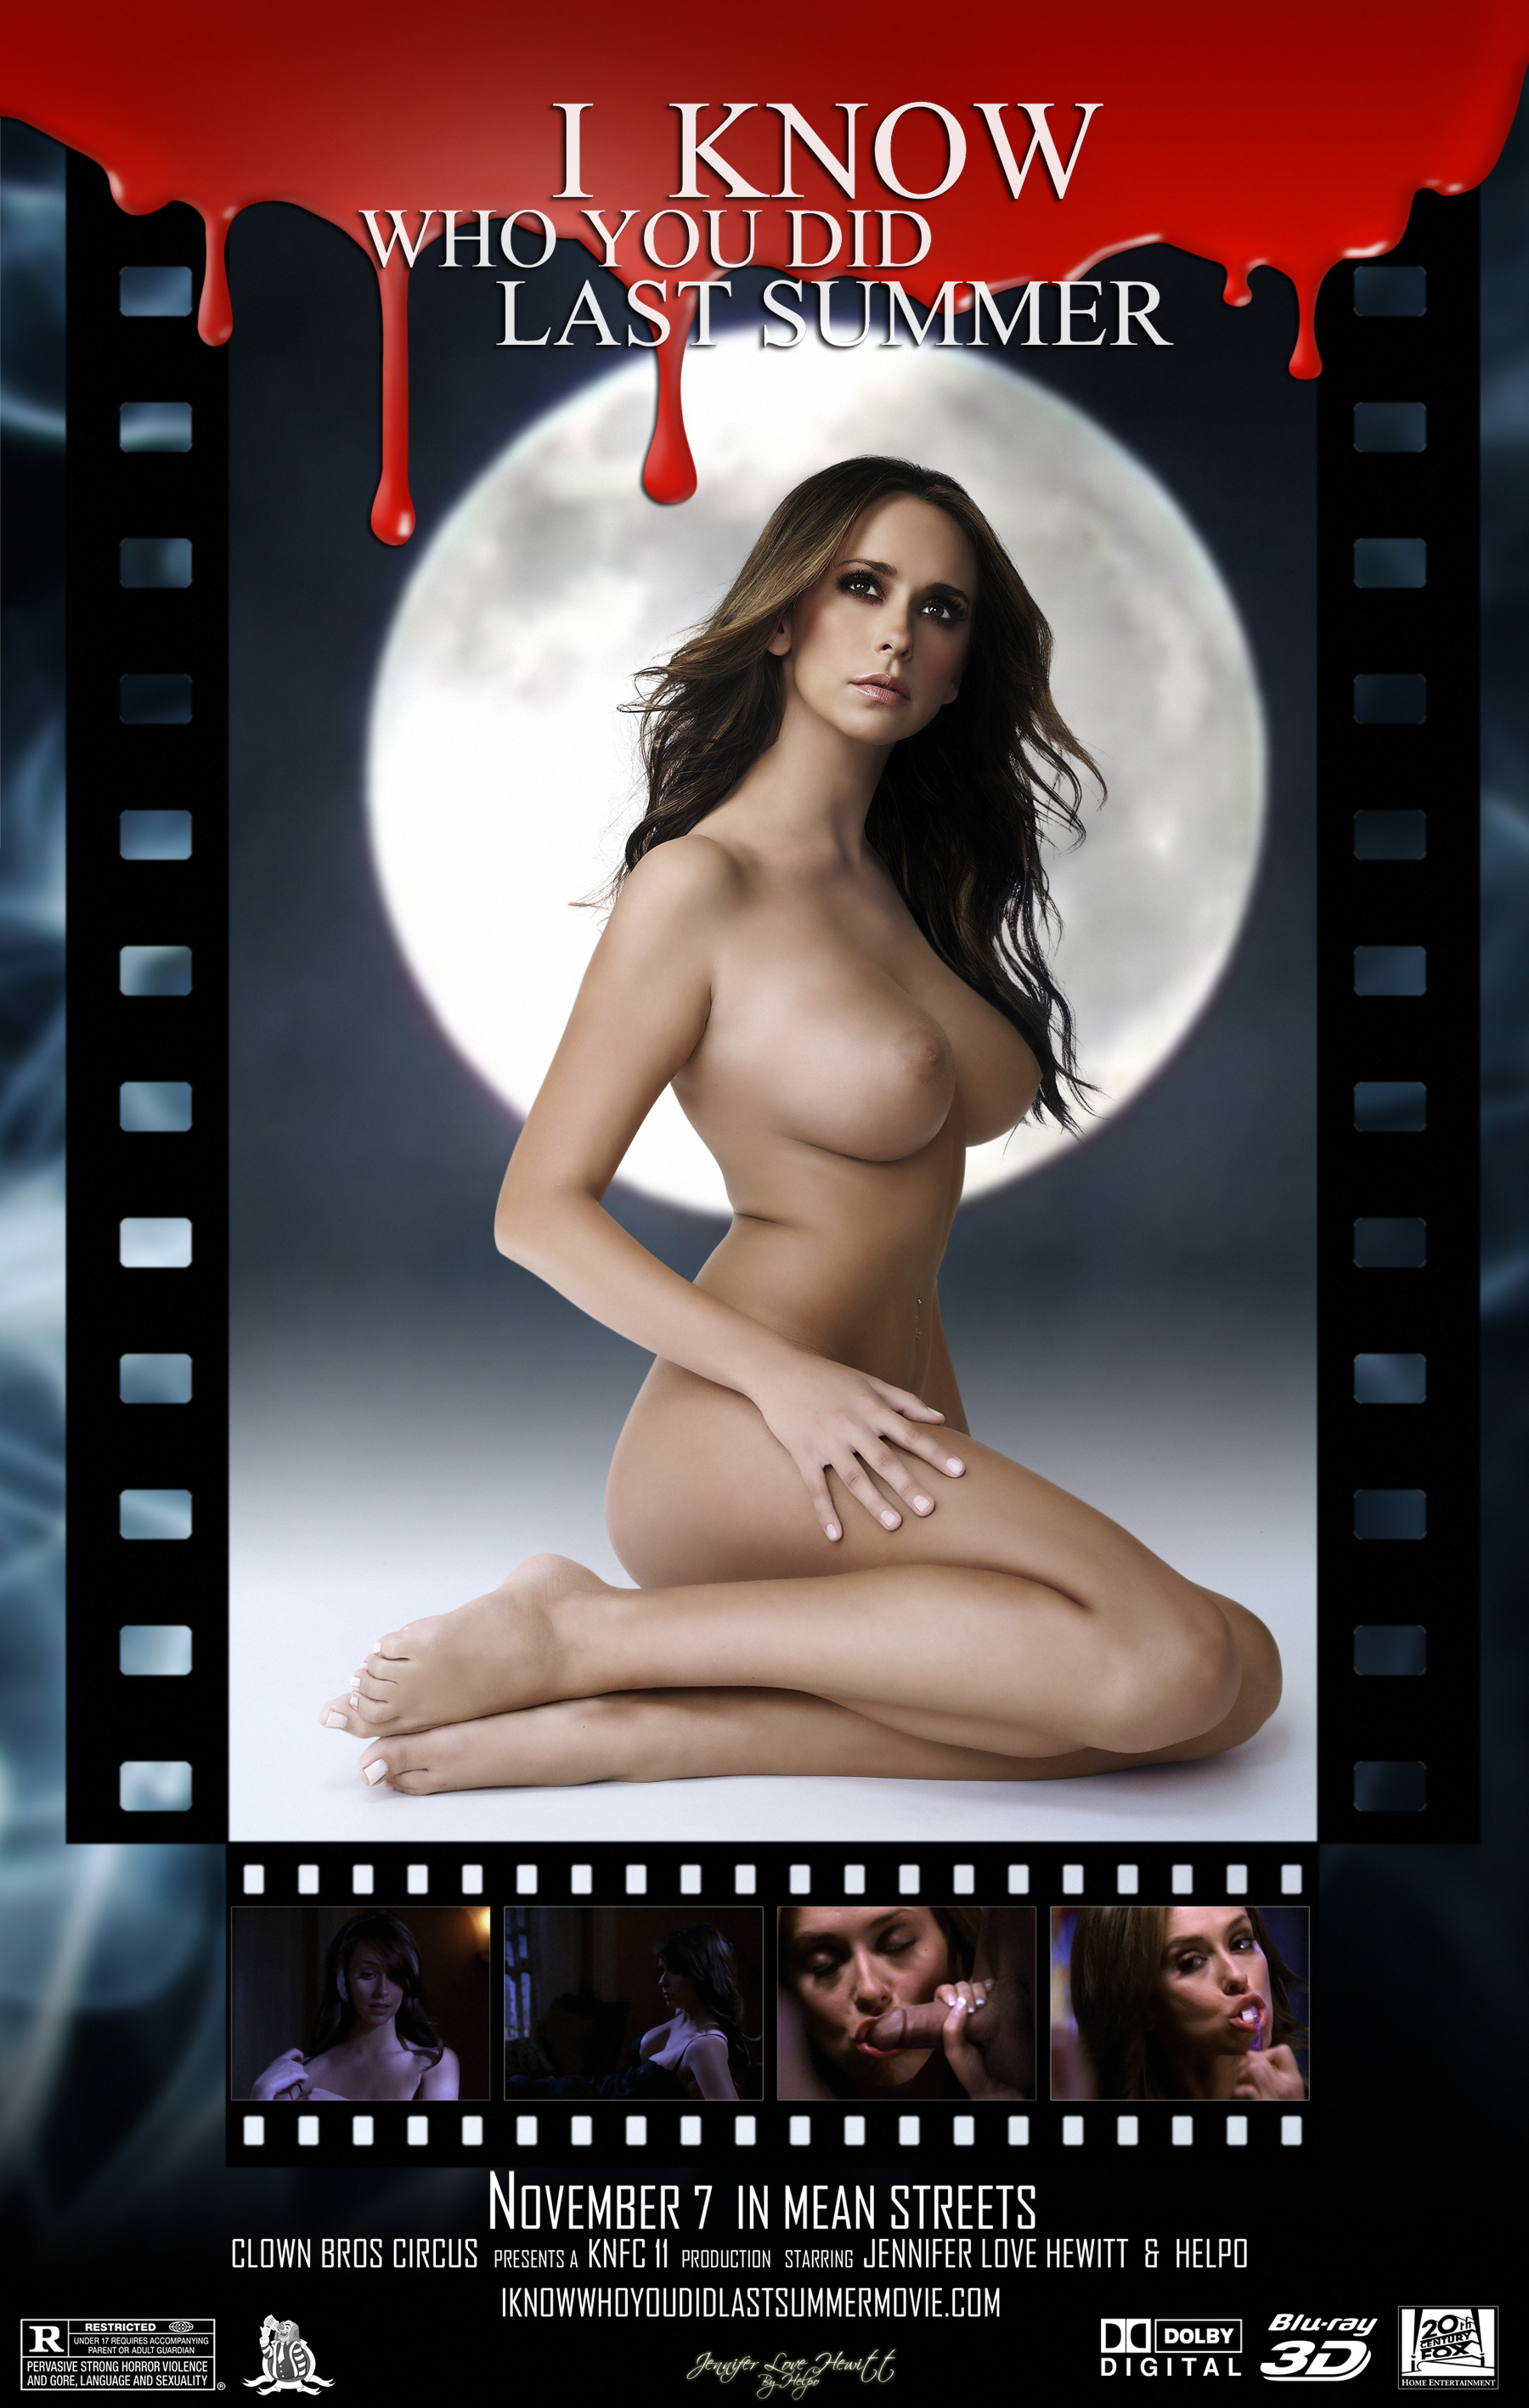 jennifer-love-hewitt-nudity-italian-teen-babes